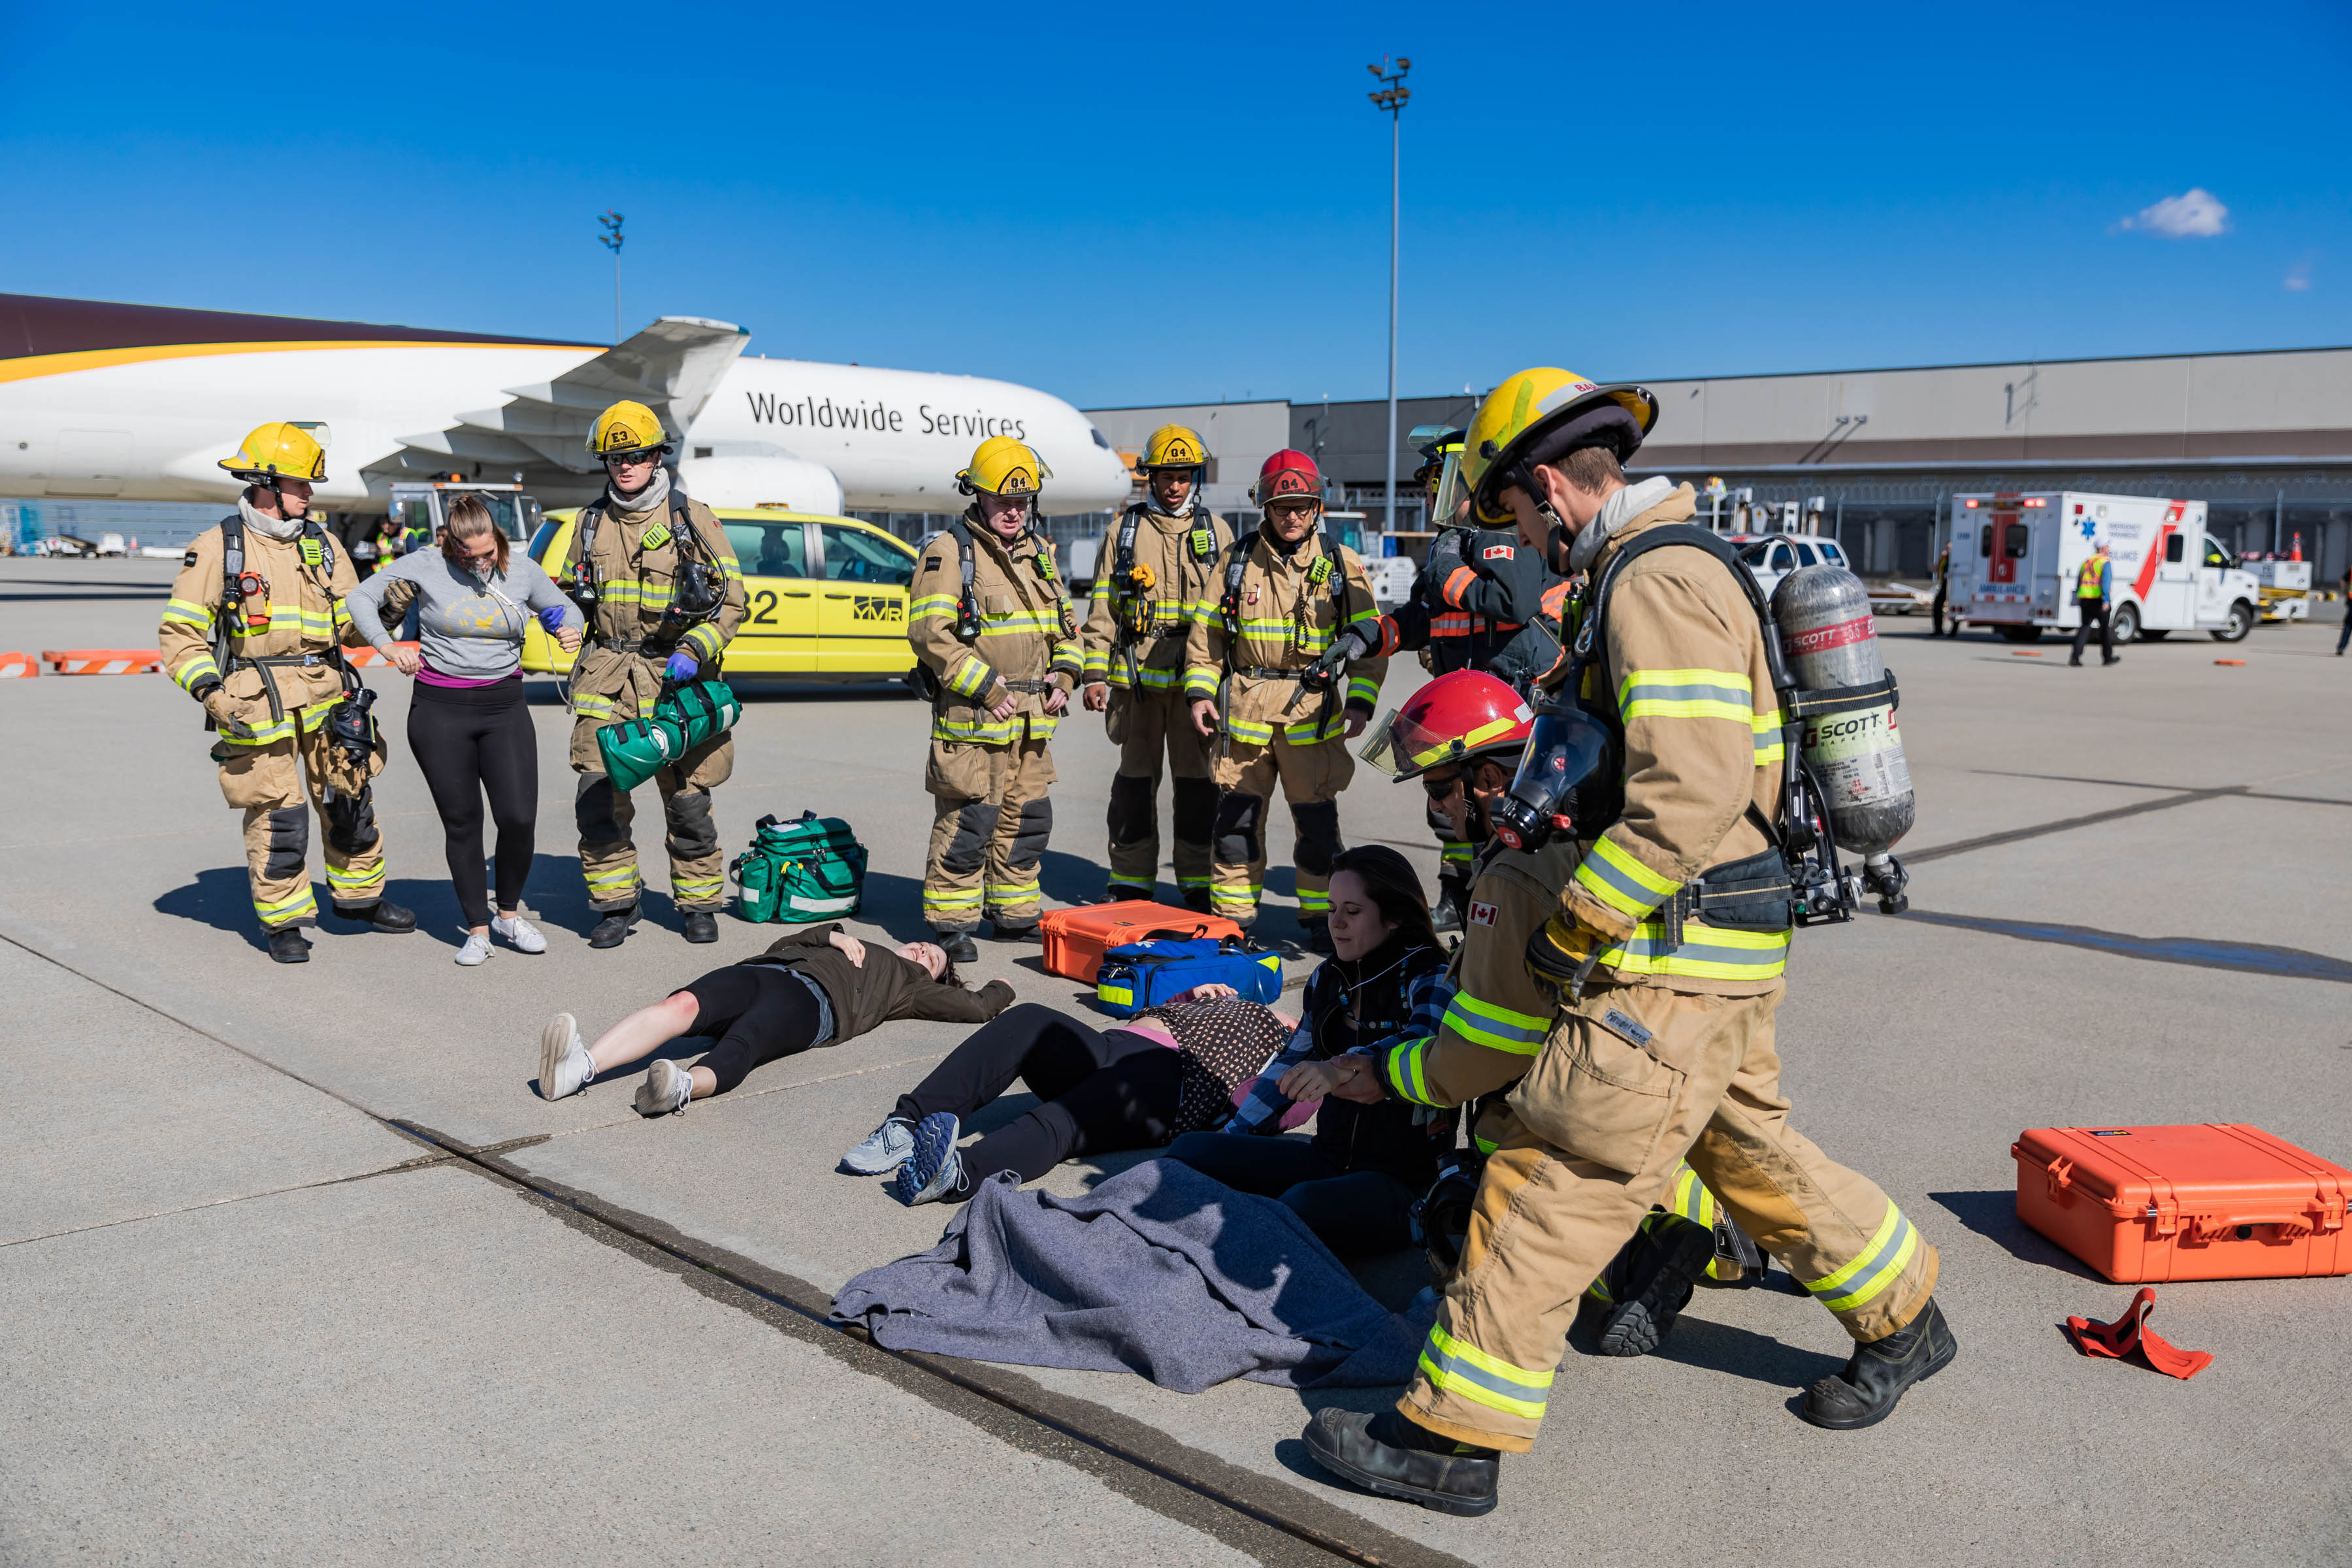 Emergency Responders on the apron in action during the 2019 emergency exercise.